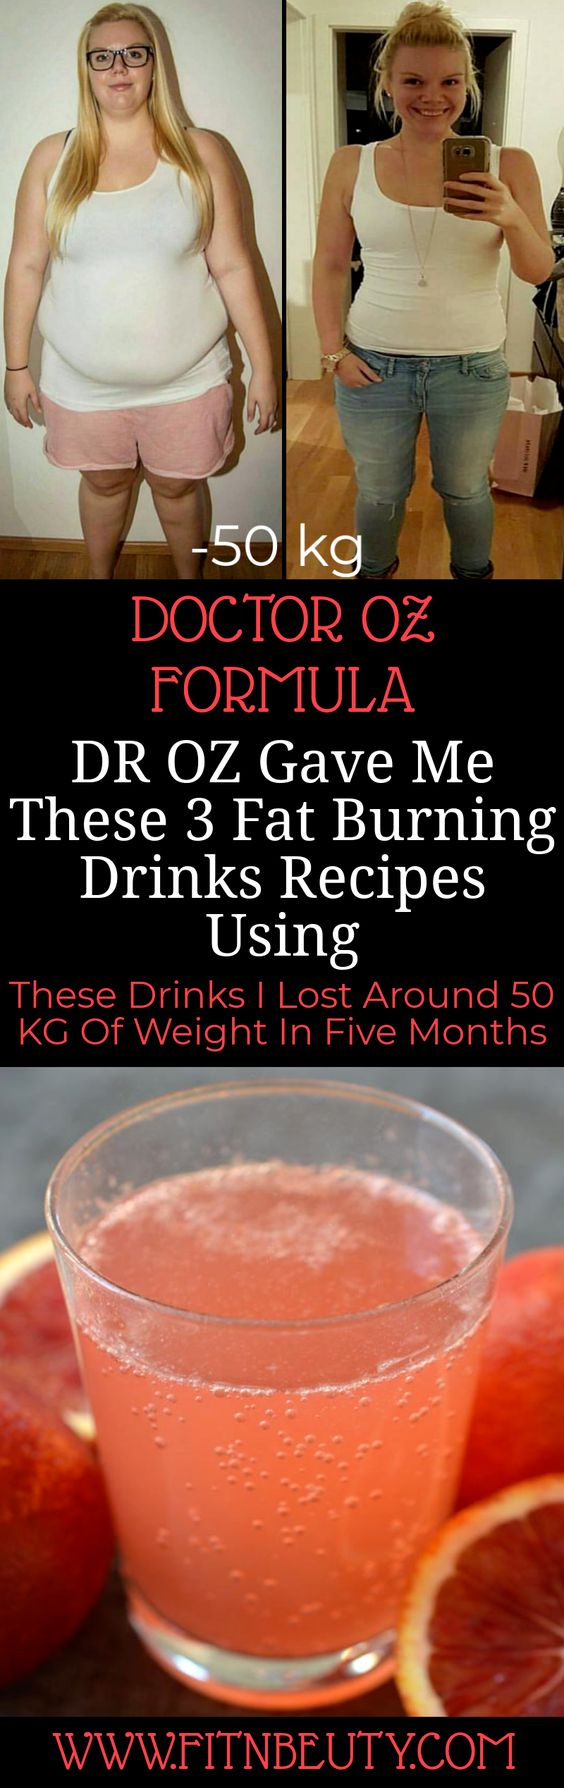 DR OZ Gave Me These 3 Fat Burning Drinks Recipes Using These Drinks I Lost Around 50 KG Of Weight In Five Months